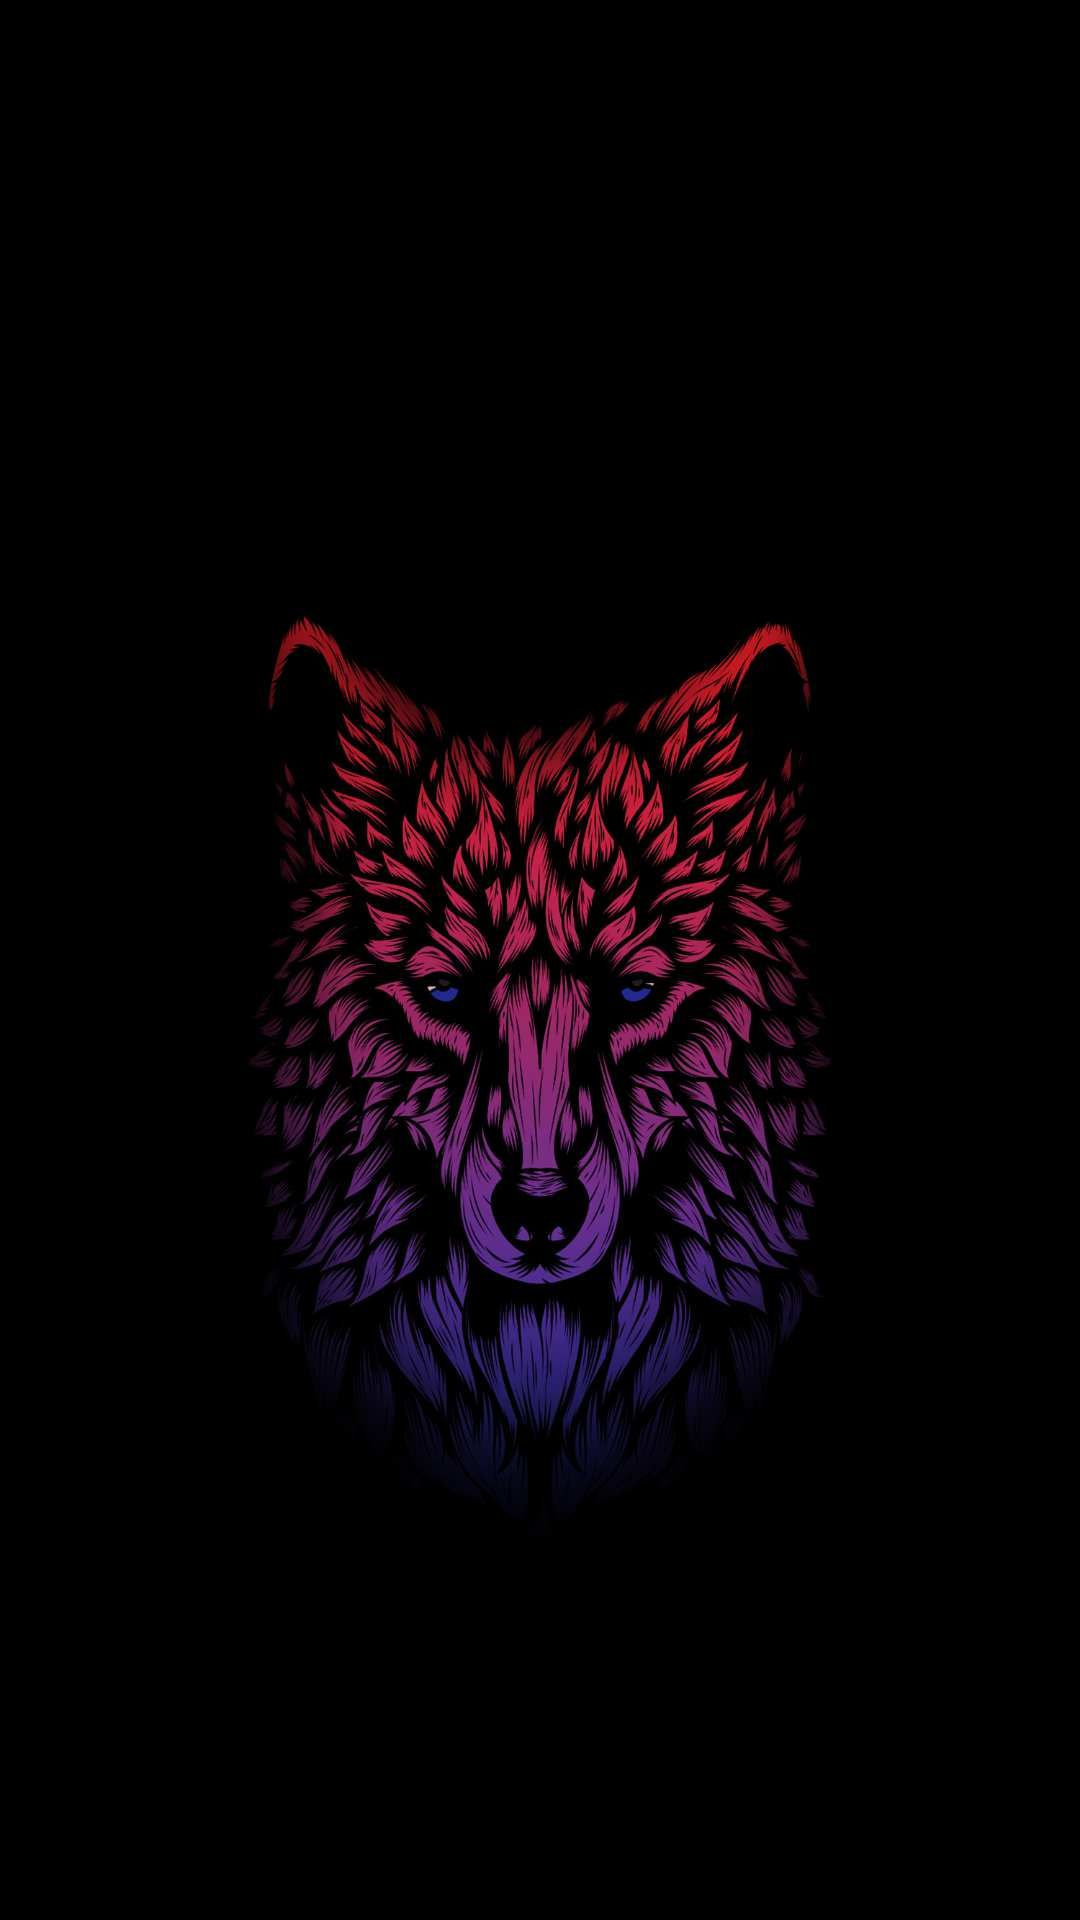 Iphone Wallpapers For Iphone 8 Iphone 8 Plus Iphone 6s Iphone 6s Plus Iphone X And Ipod Touch High Q Wolf Wallpaper Geometric Wolf Wallpaper Geometric Wolf